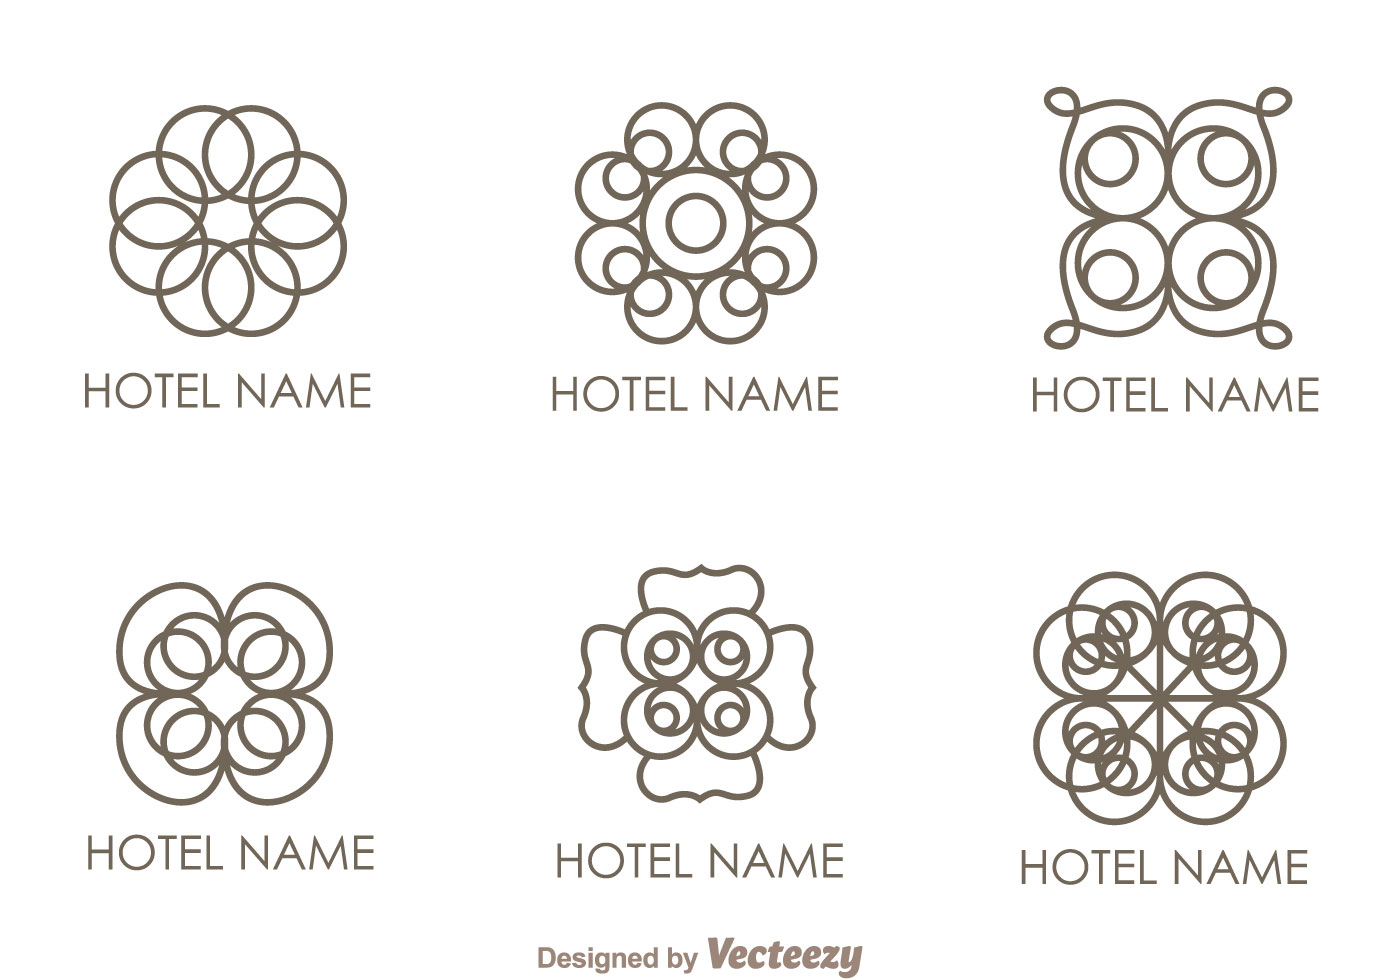 Floral Ornament Hotel Logo Vectors Download Free Vector